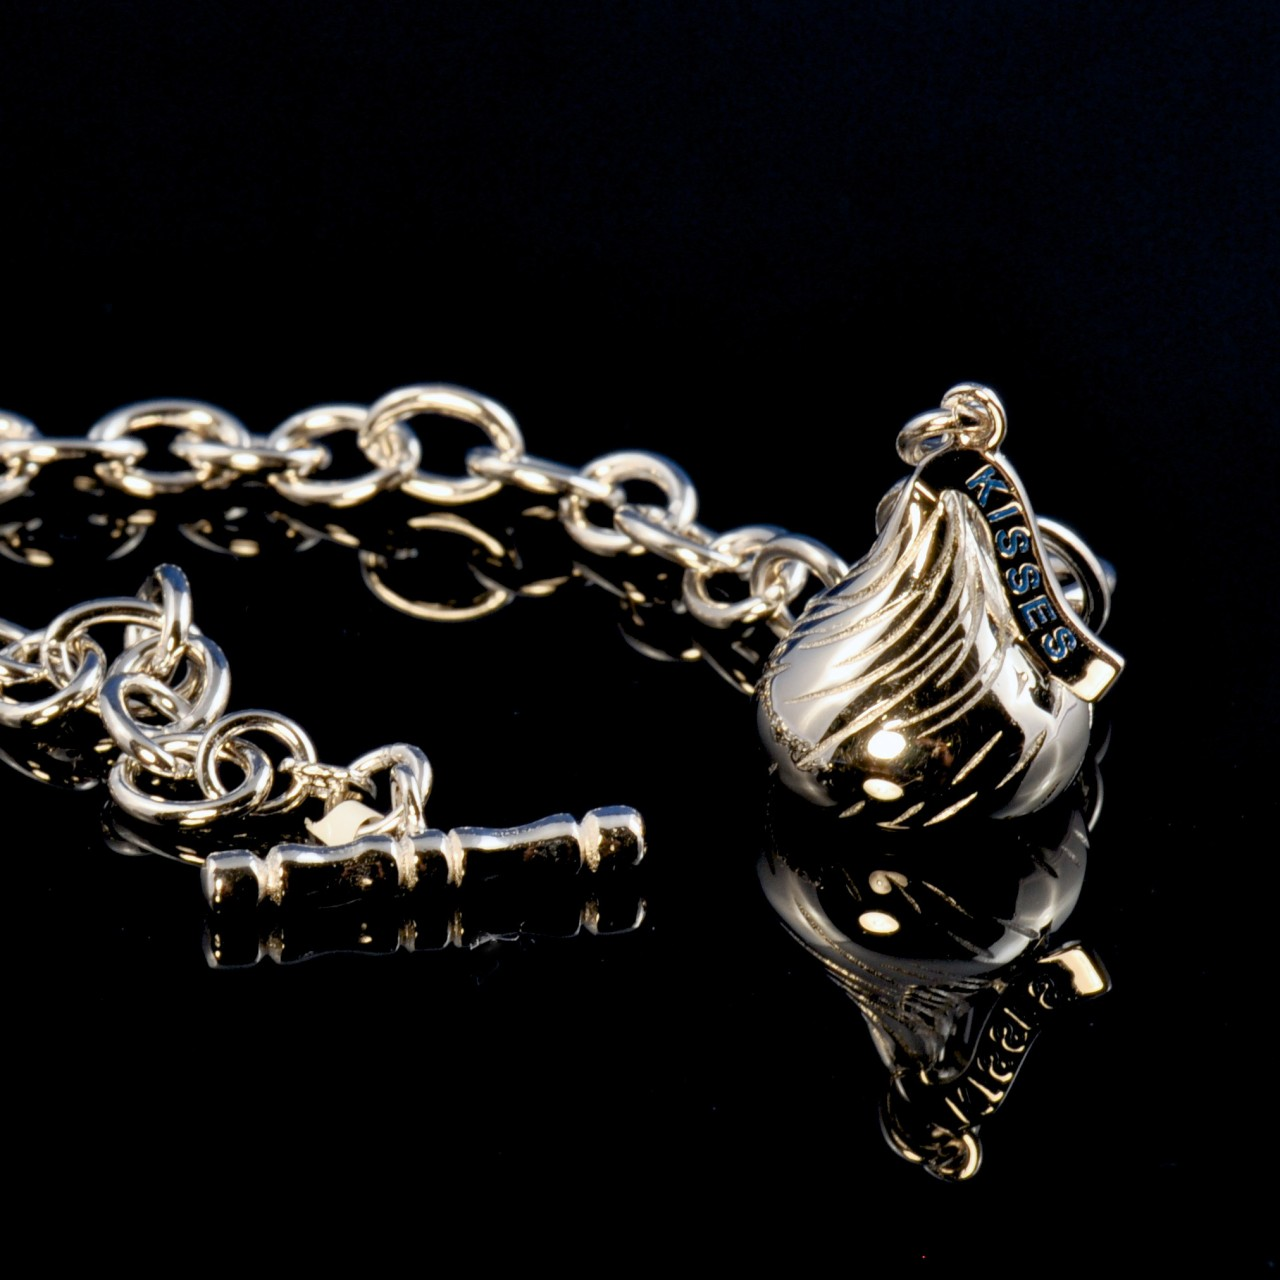 Kiss sterling silver bracelet photographed on glossy black background 1280x1280